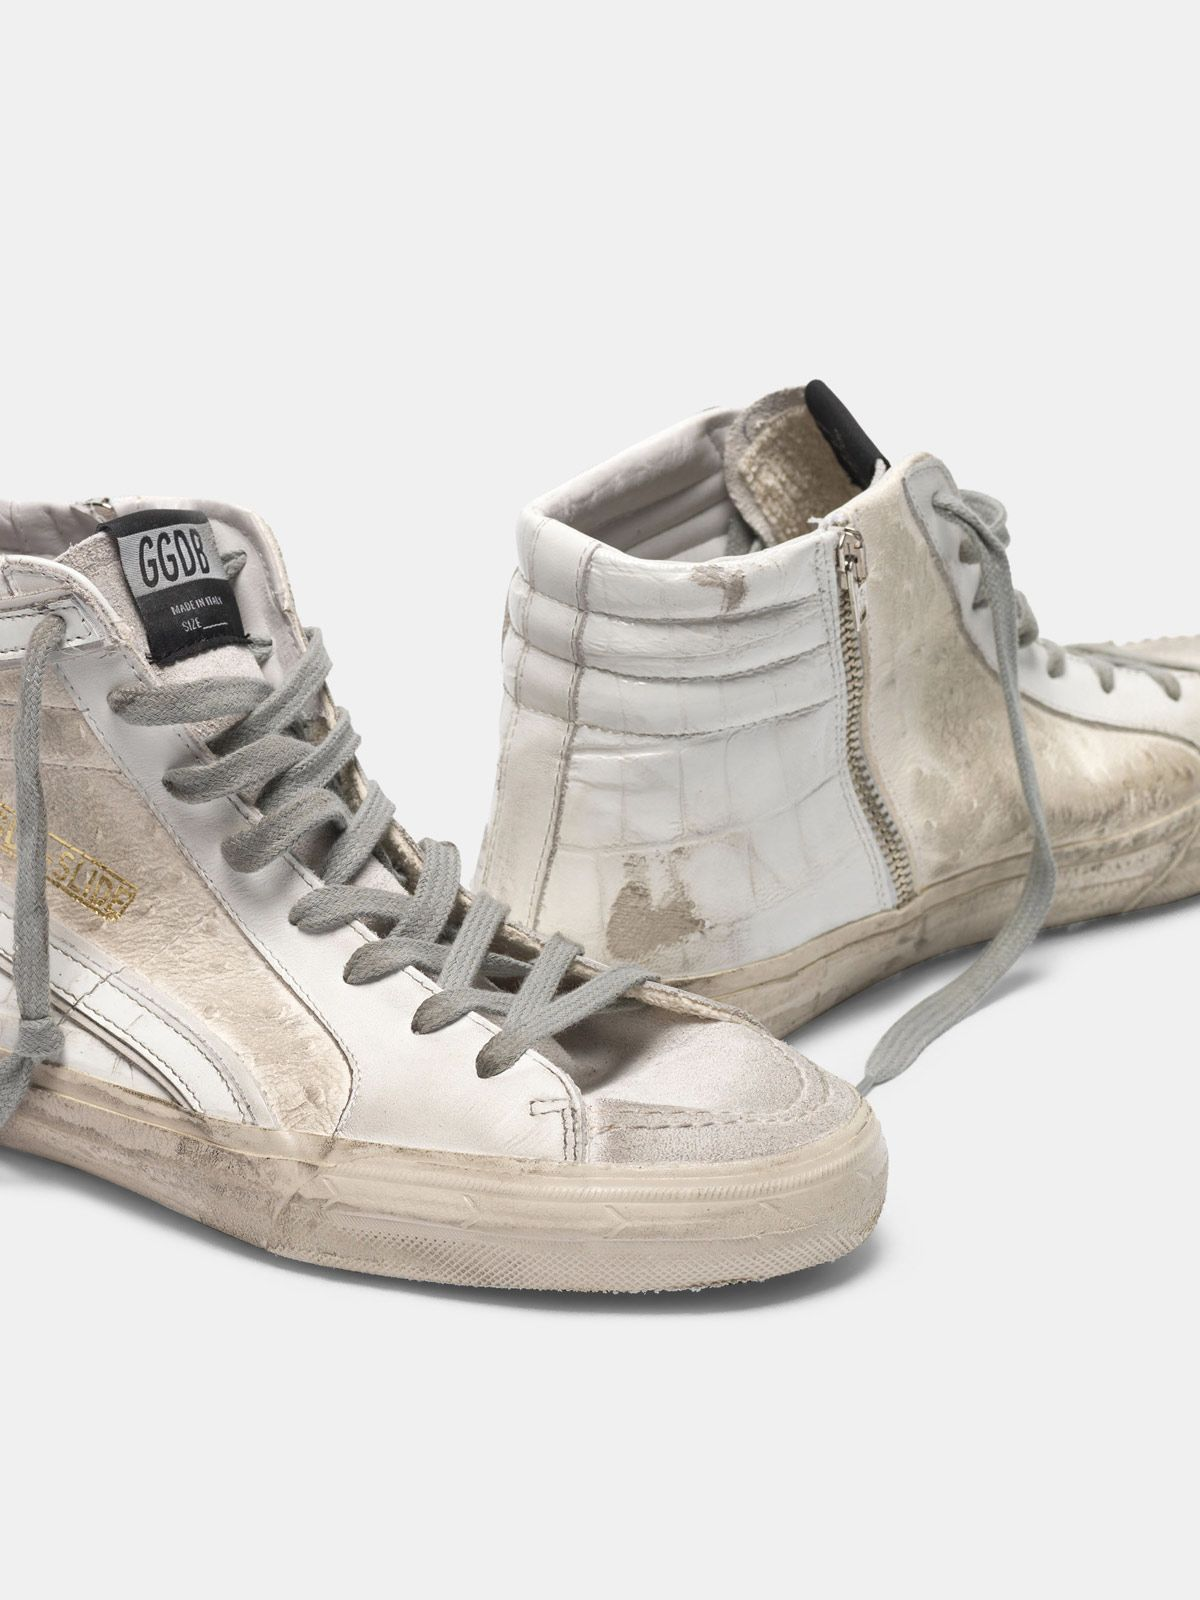 Golden Goose - Sneakers Slide bianche patchwork shades in